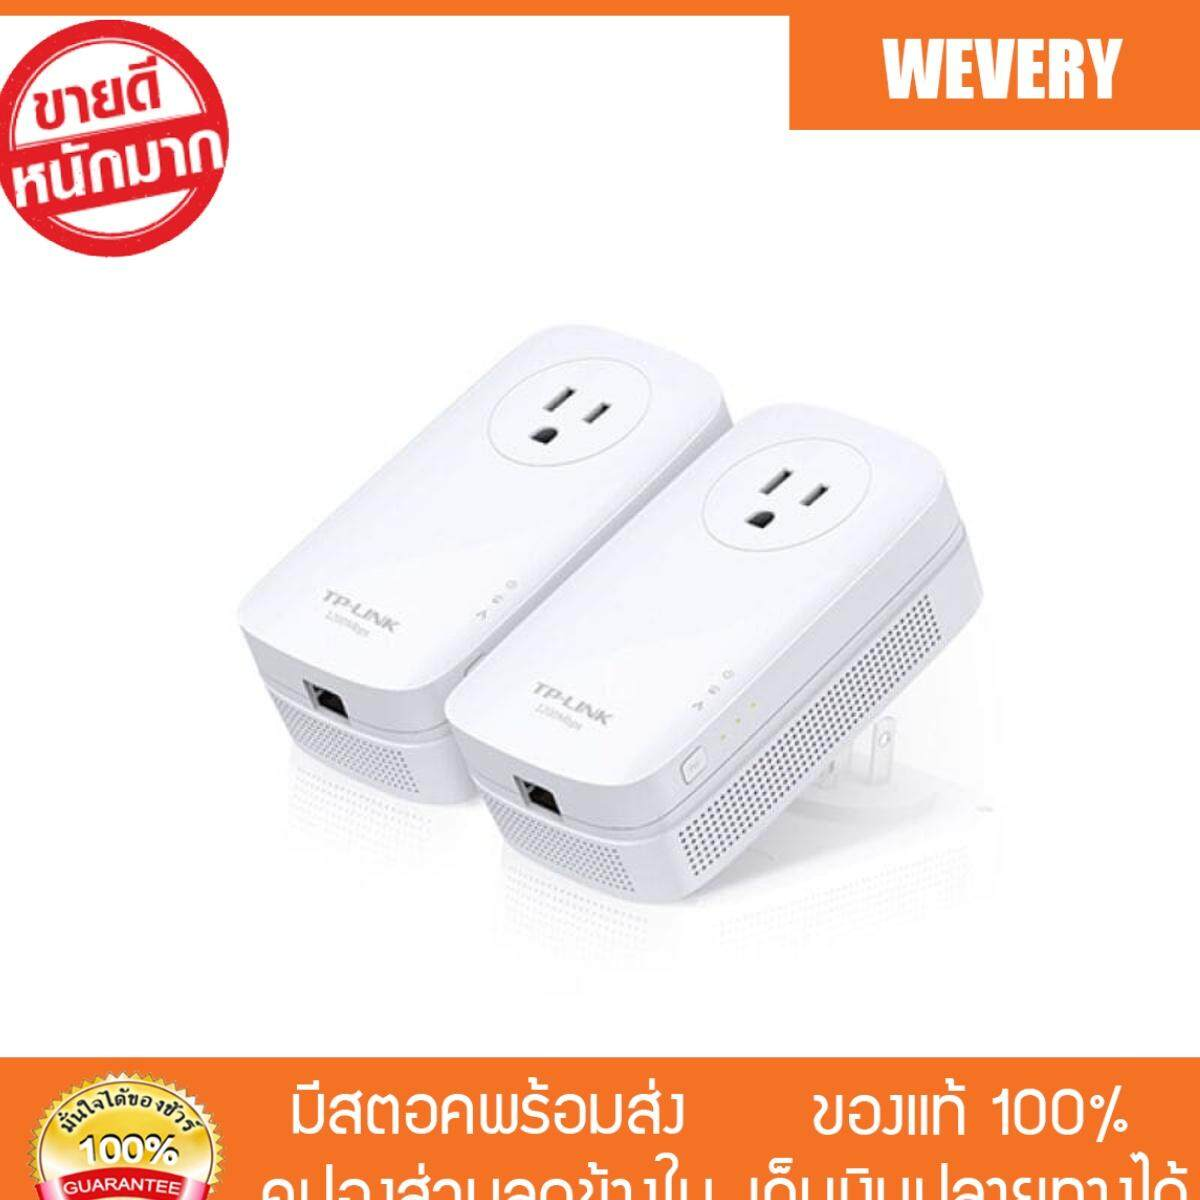 [Wevery] TP-Link TL-PA8010P KIT AV1200 Gigabit Passthrough Powerline Starter Kit (White) power line wifi ส่ง Kerry เก็บปลายทางได้